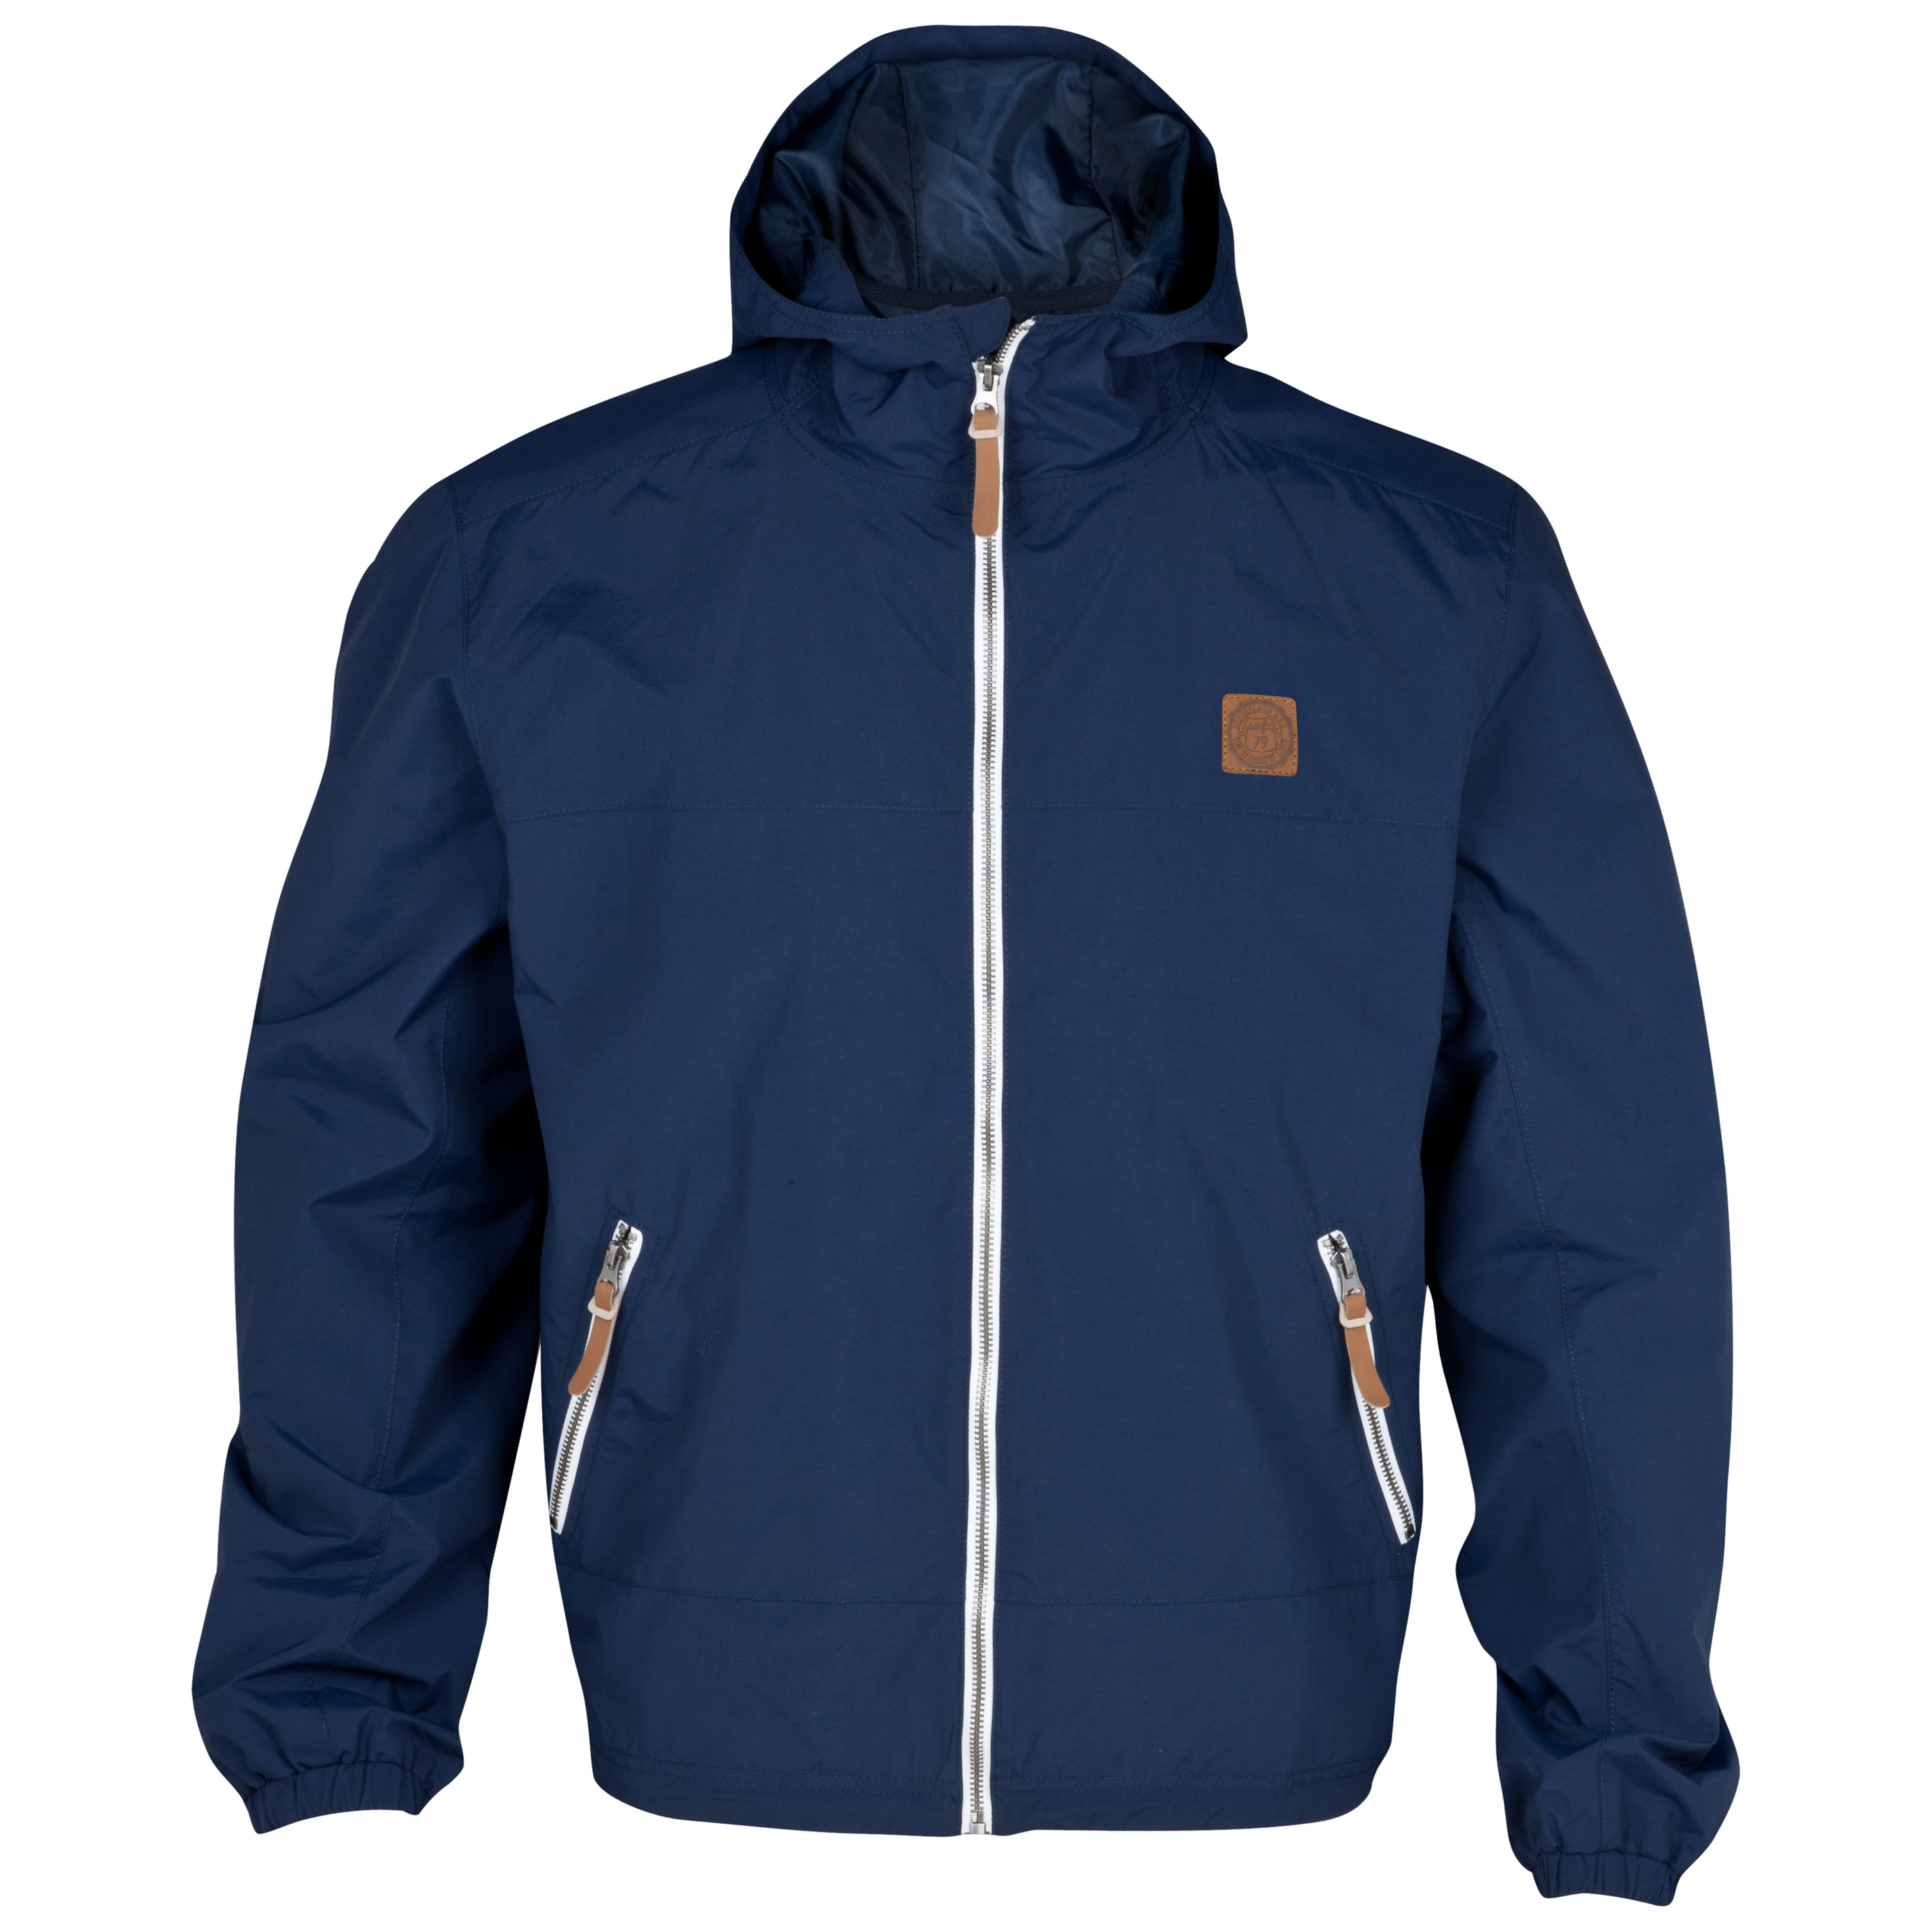 Sunderland Breeze Jacket - Navy